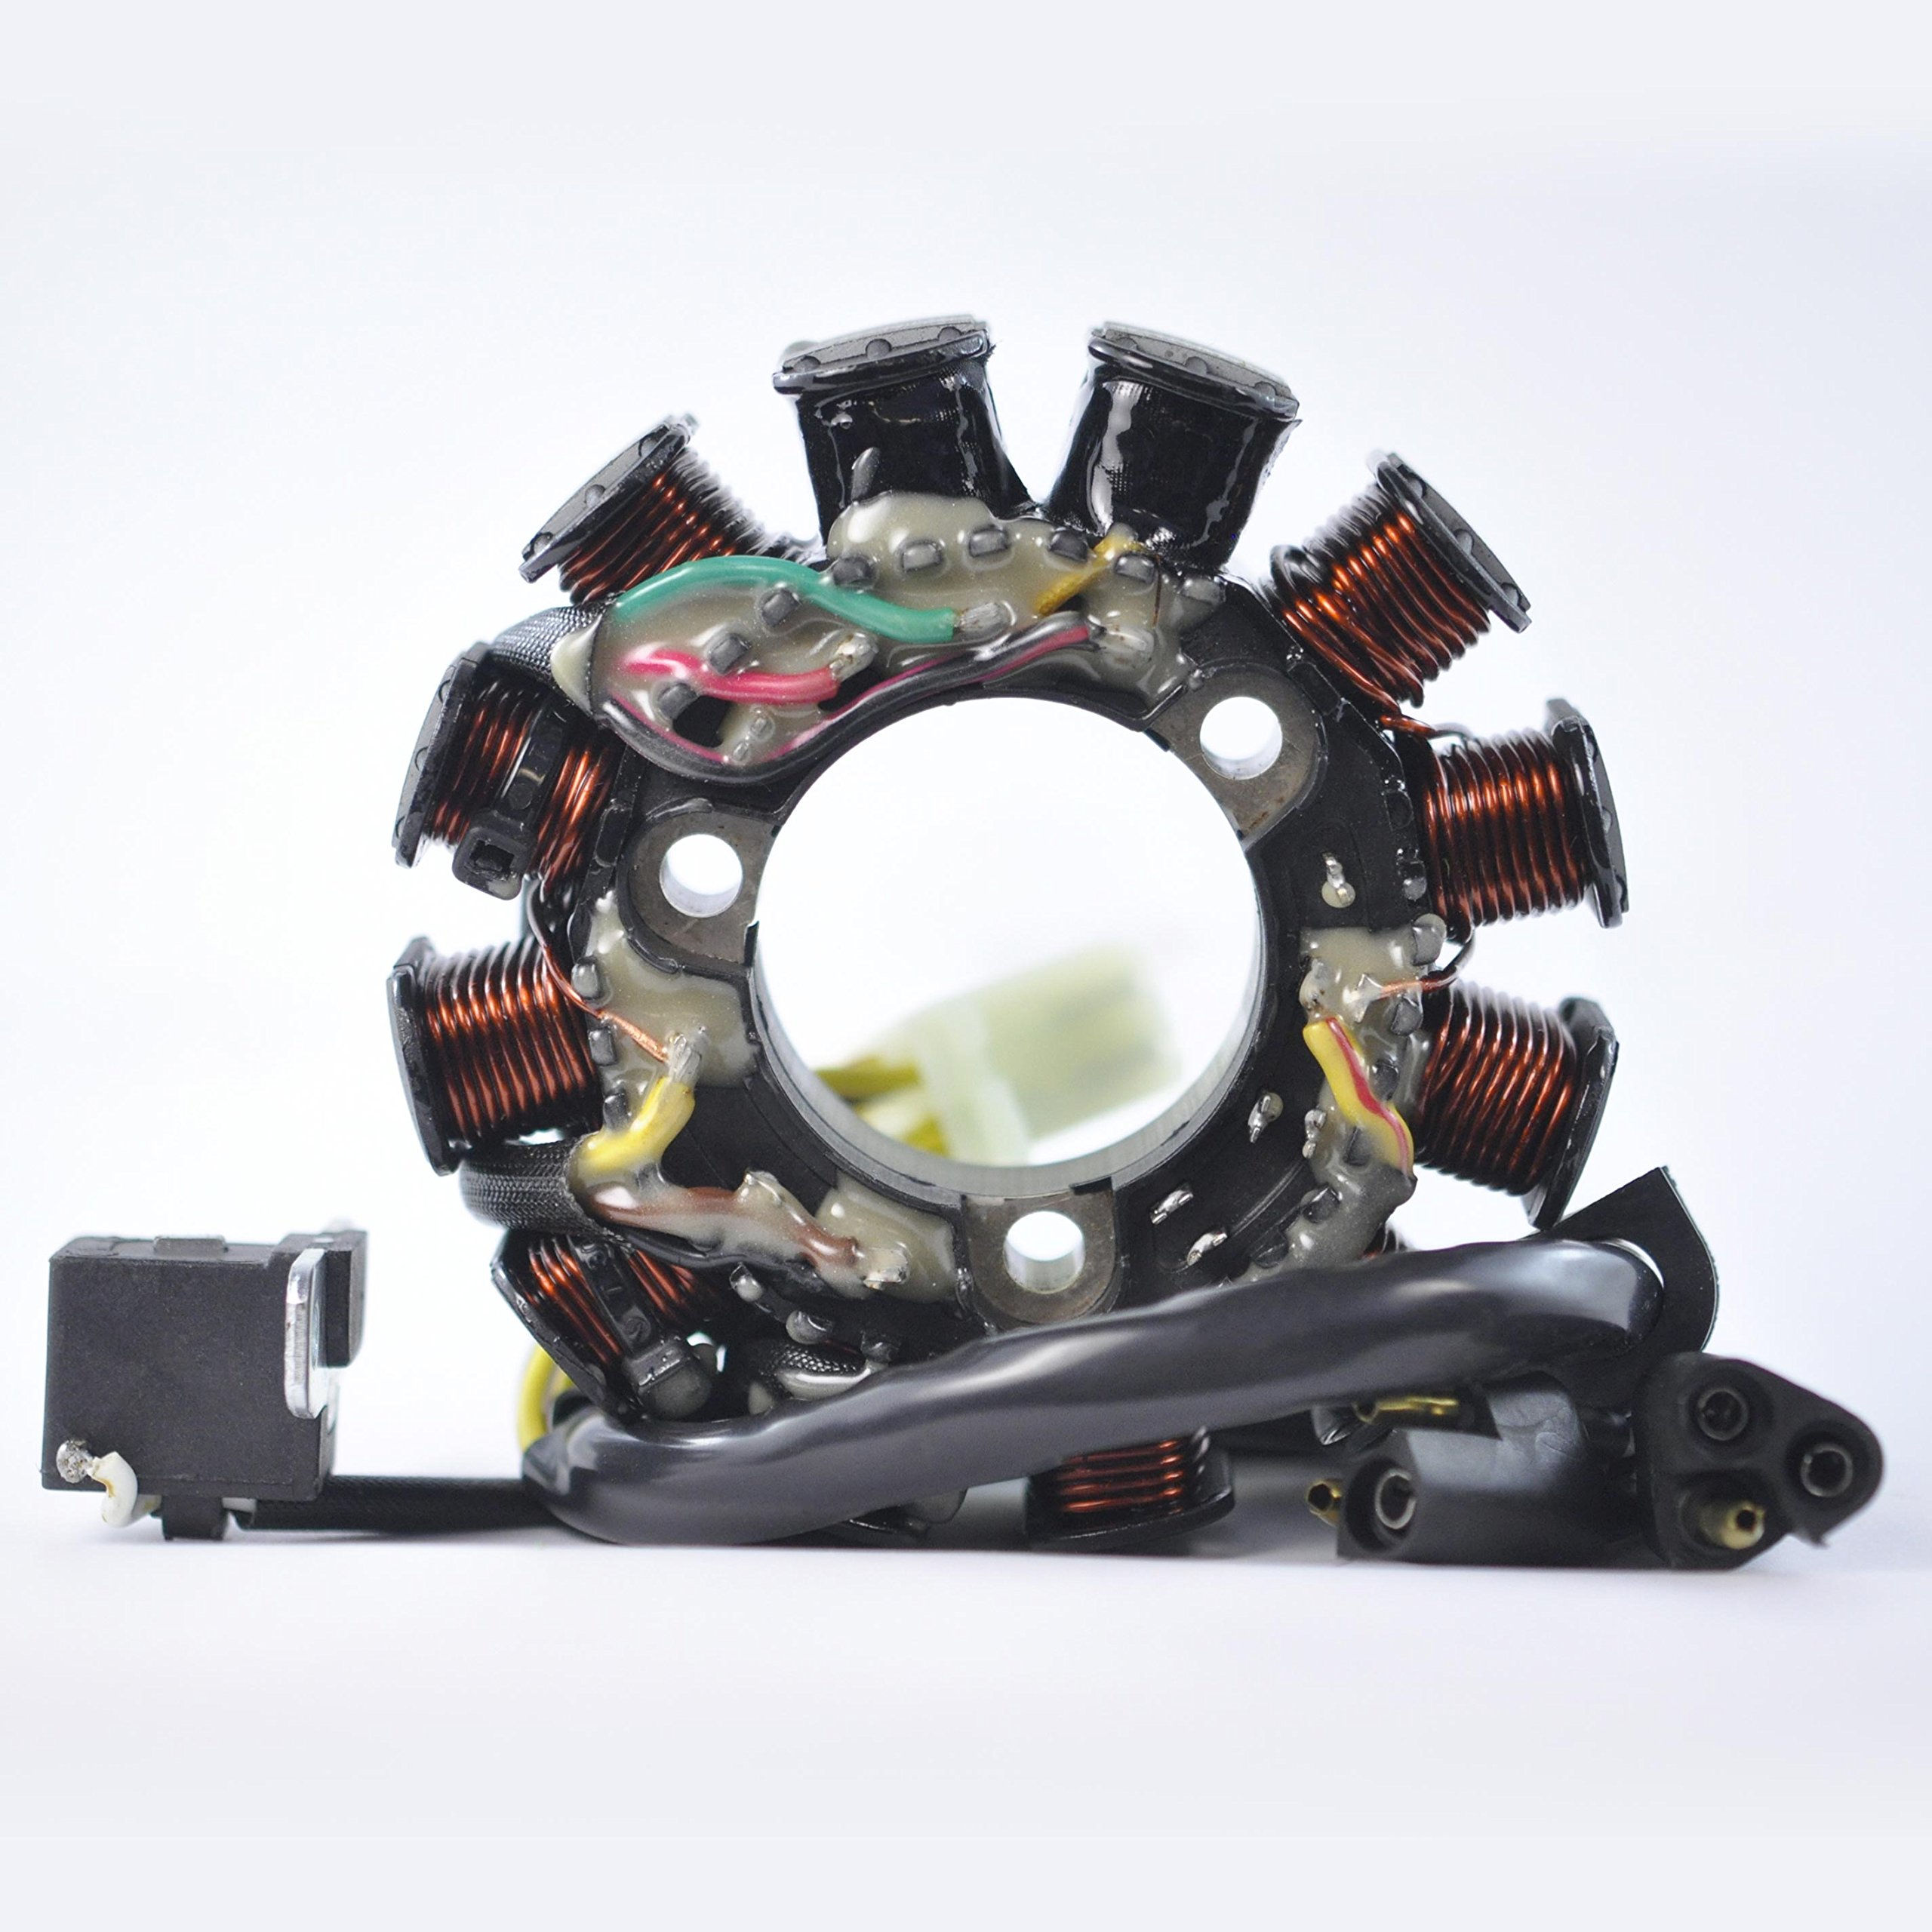 Stator For Polaris Pro X Classic IQ Shift Edge LX Supersport Trail RMK / Touring Transport 440 550 Carb F/C 2002-2013 OEM Repl.# 3089937 3087212 3087187 by RMSTATOR